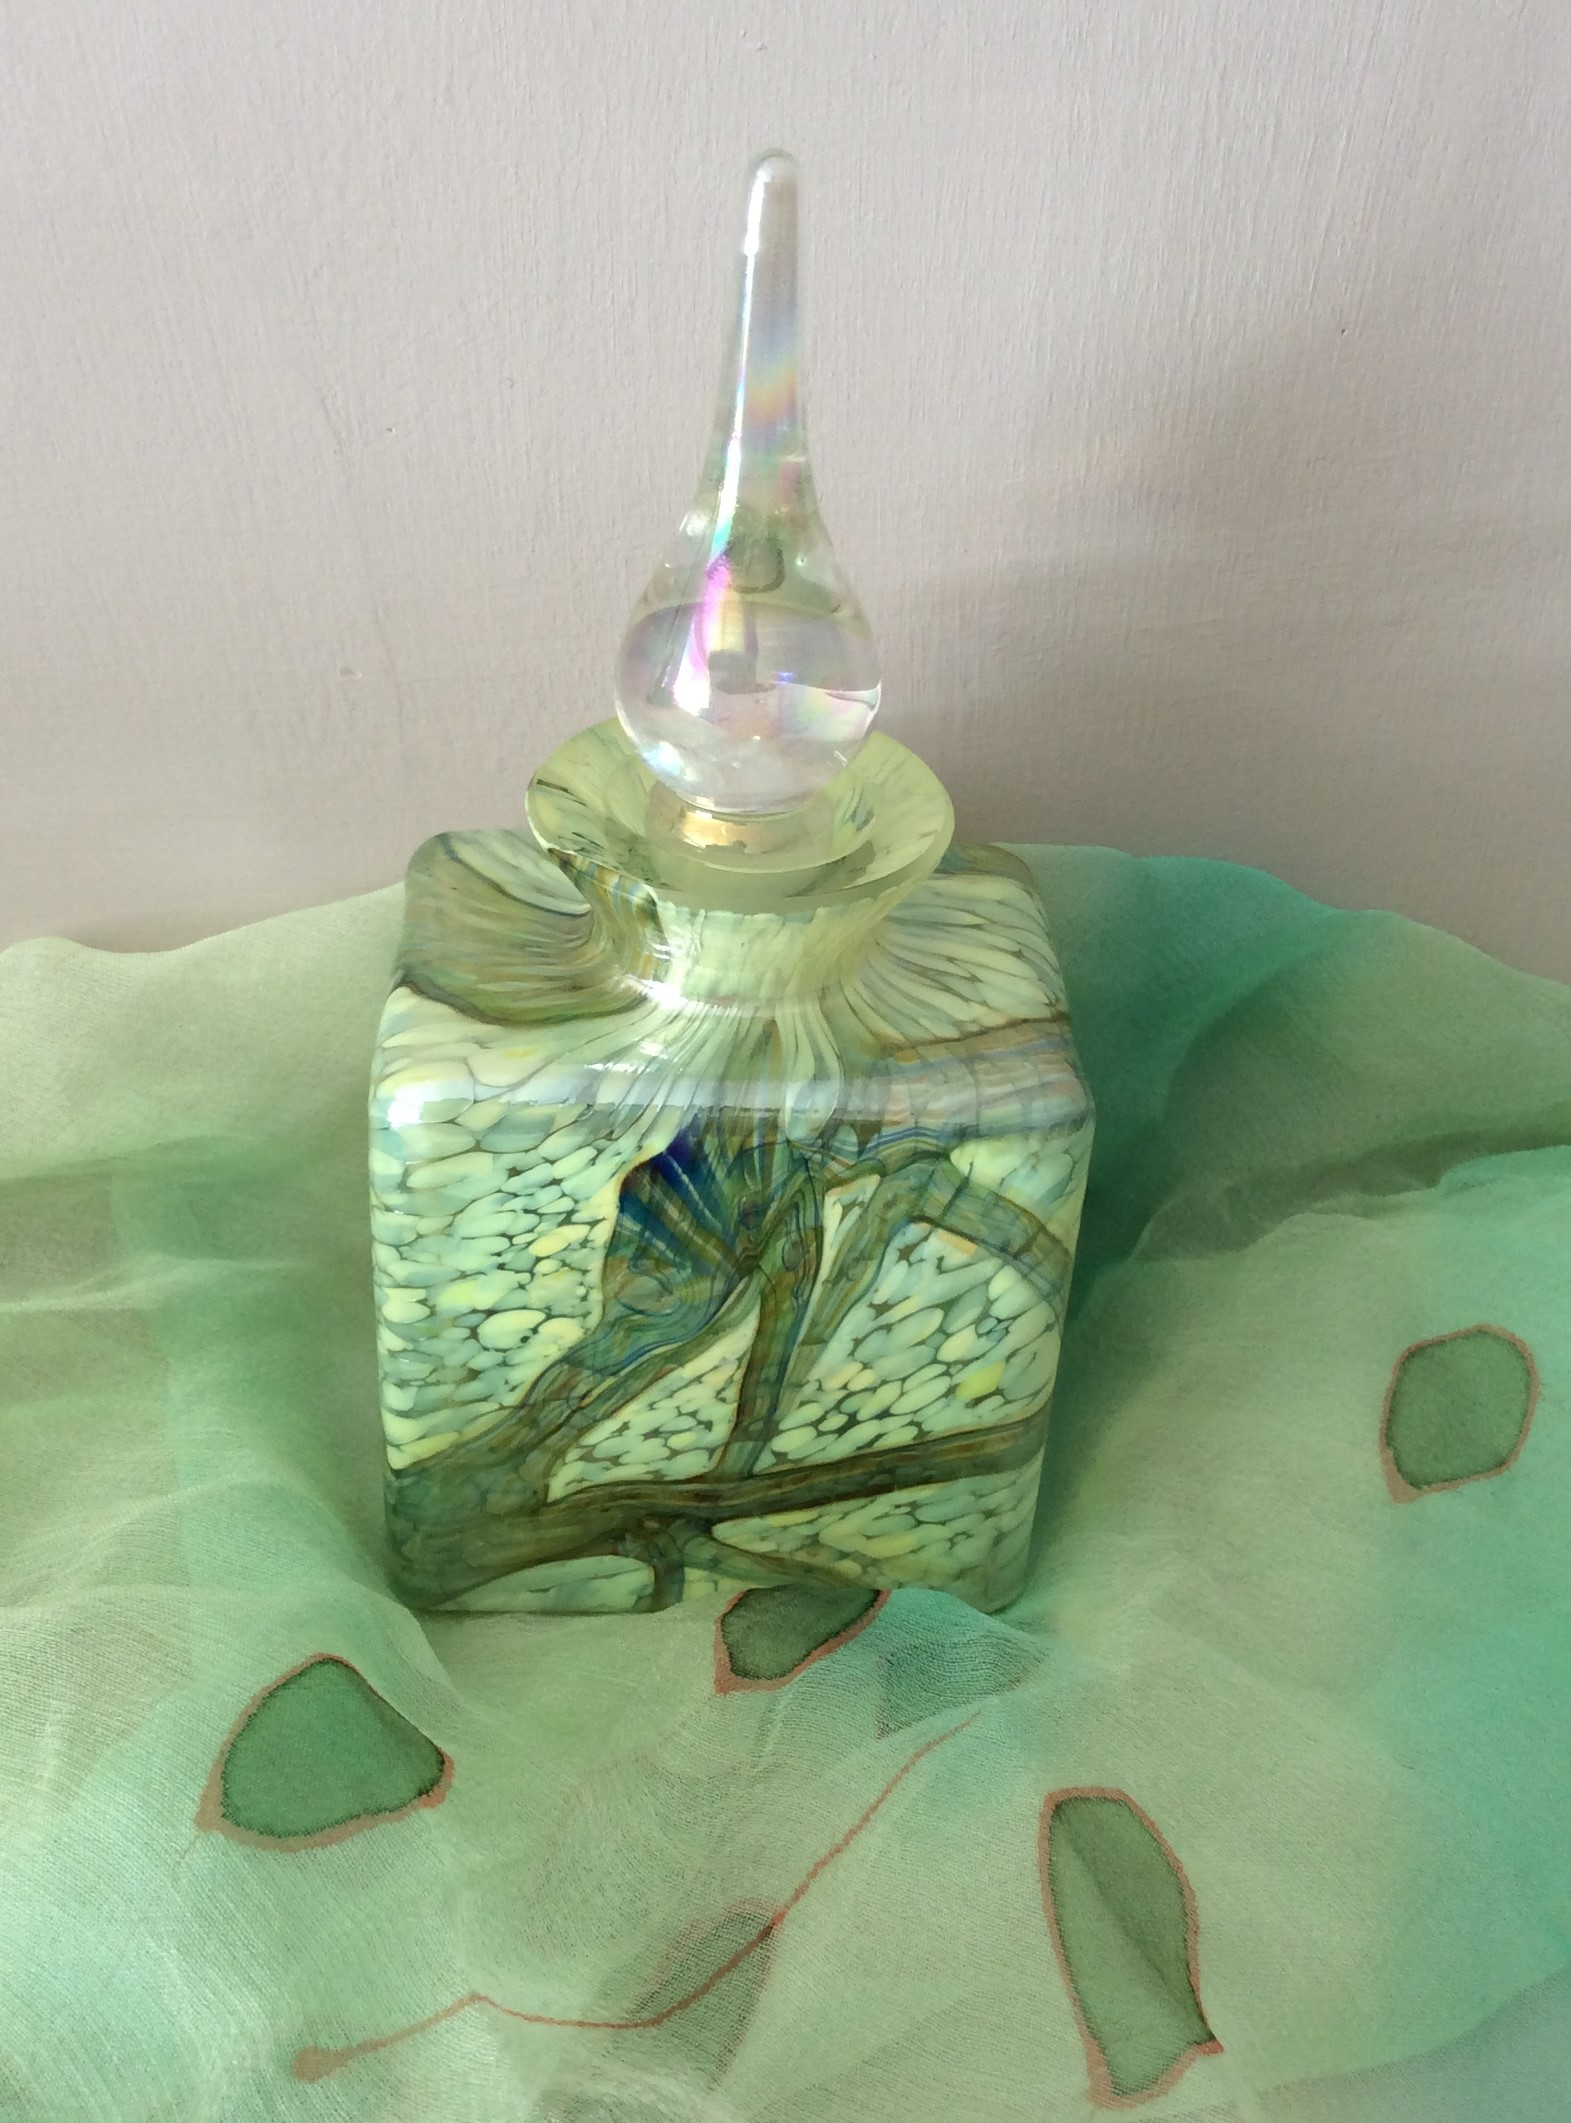 Iridescent Glass Perfume Bottle with abstract decoration over yellow and green